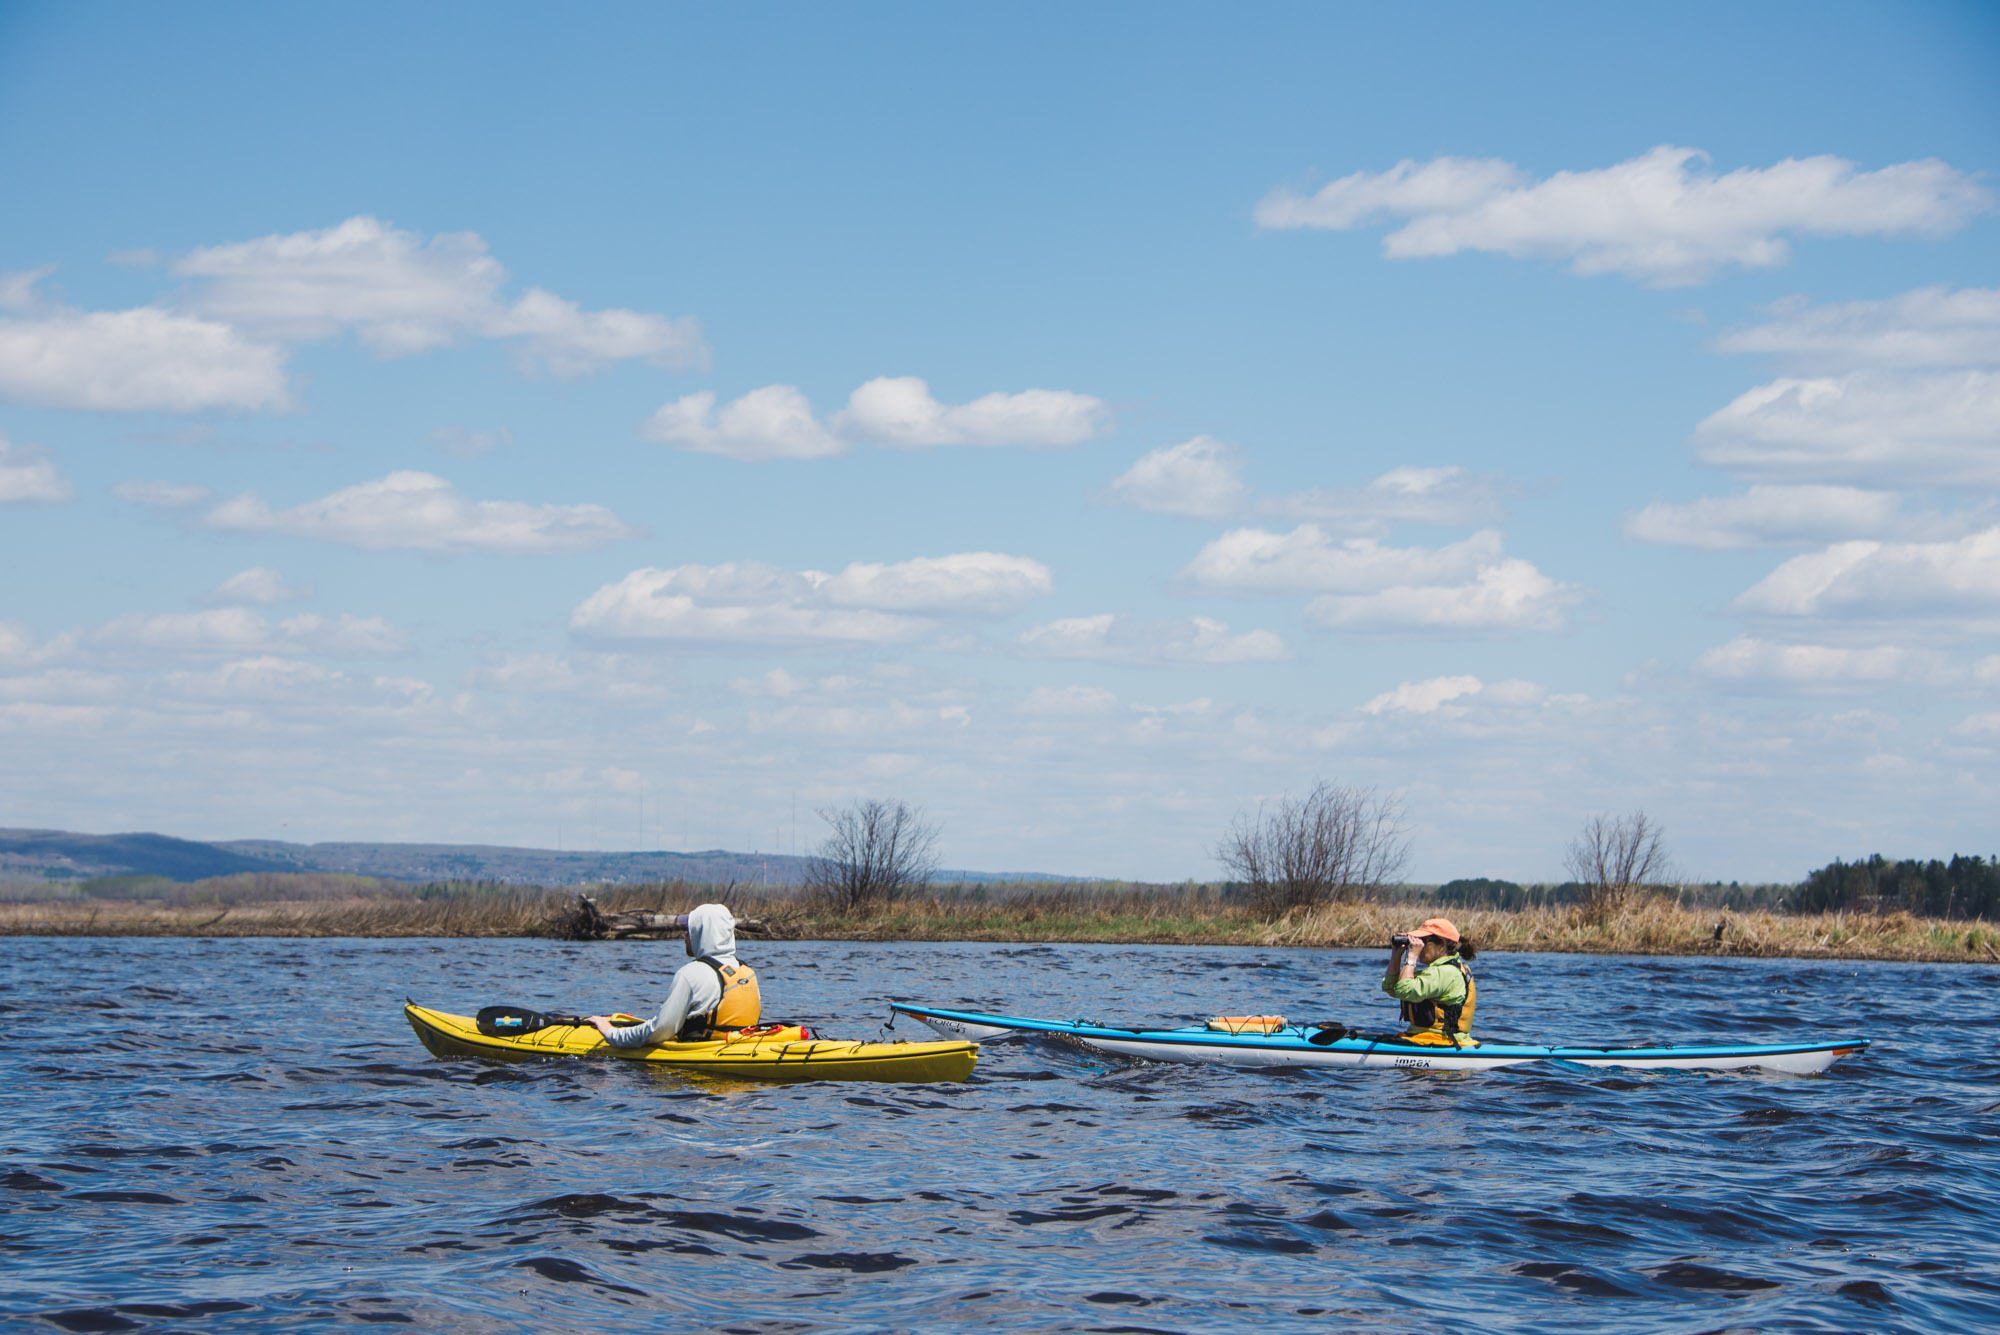 Kayakers view pelicans in the St. Louis River Estuary. Image courtesy of Alex Messenger Photography.